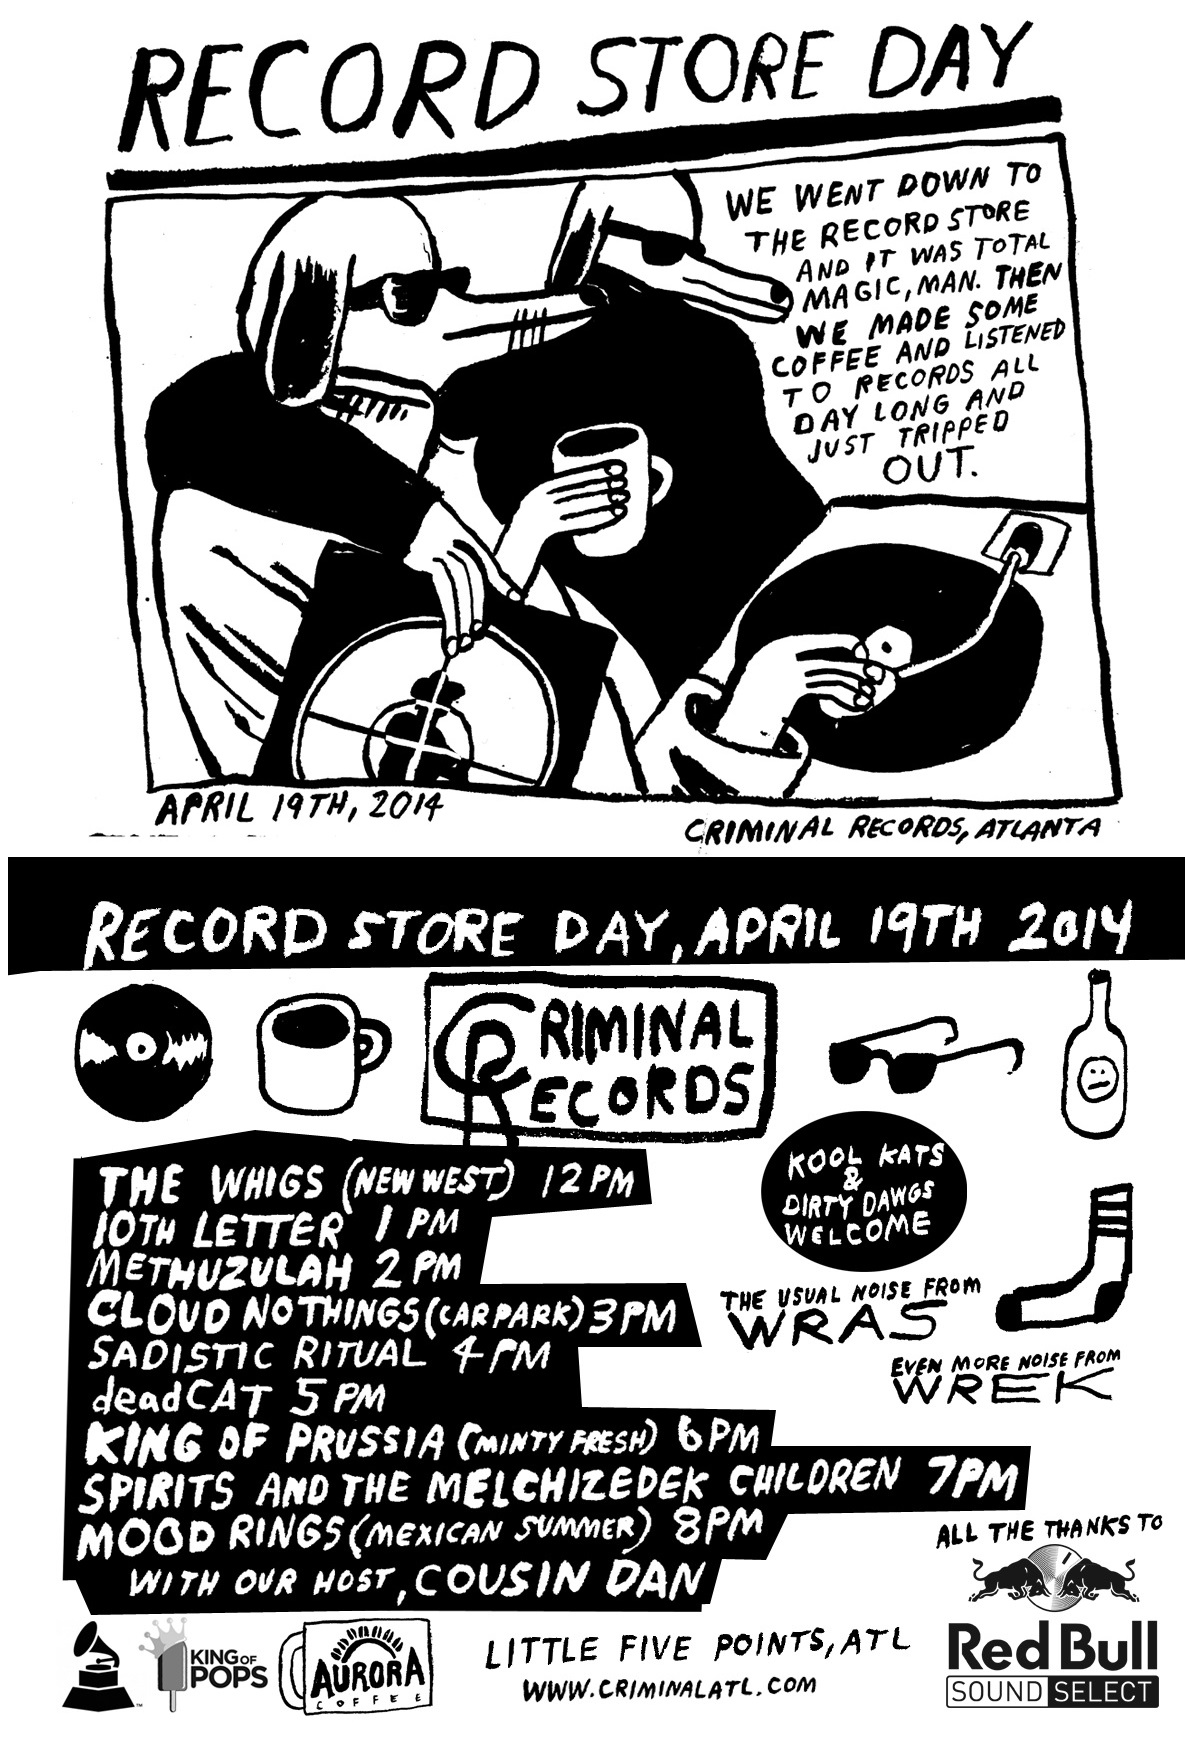 Record Store Day, April 19th, 2014